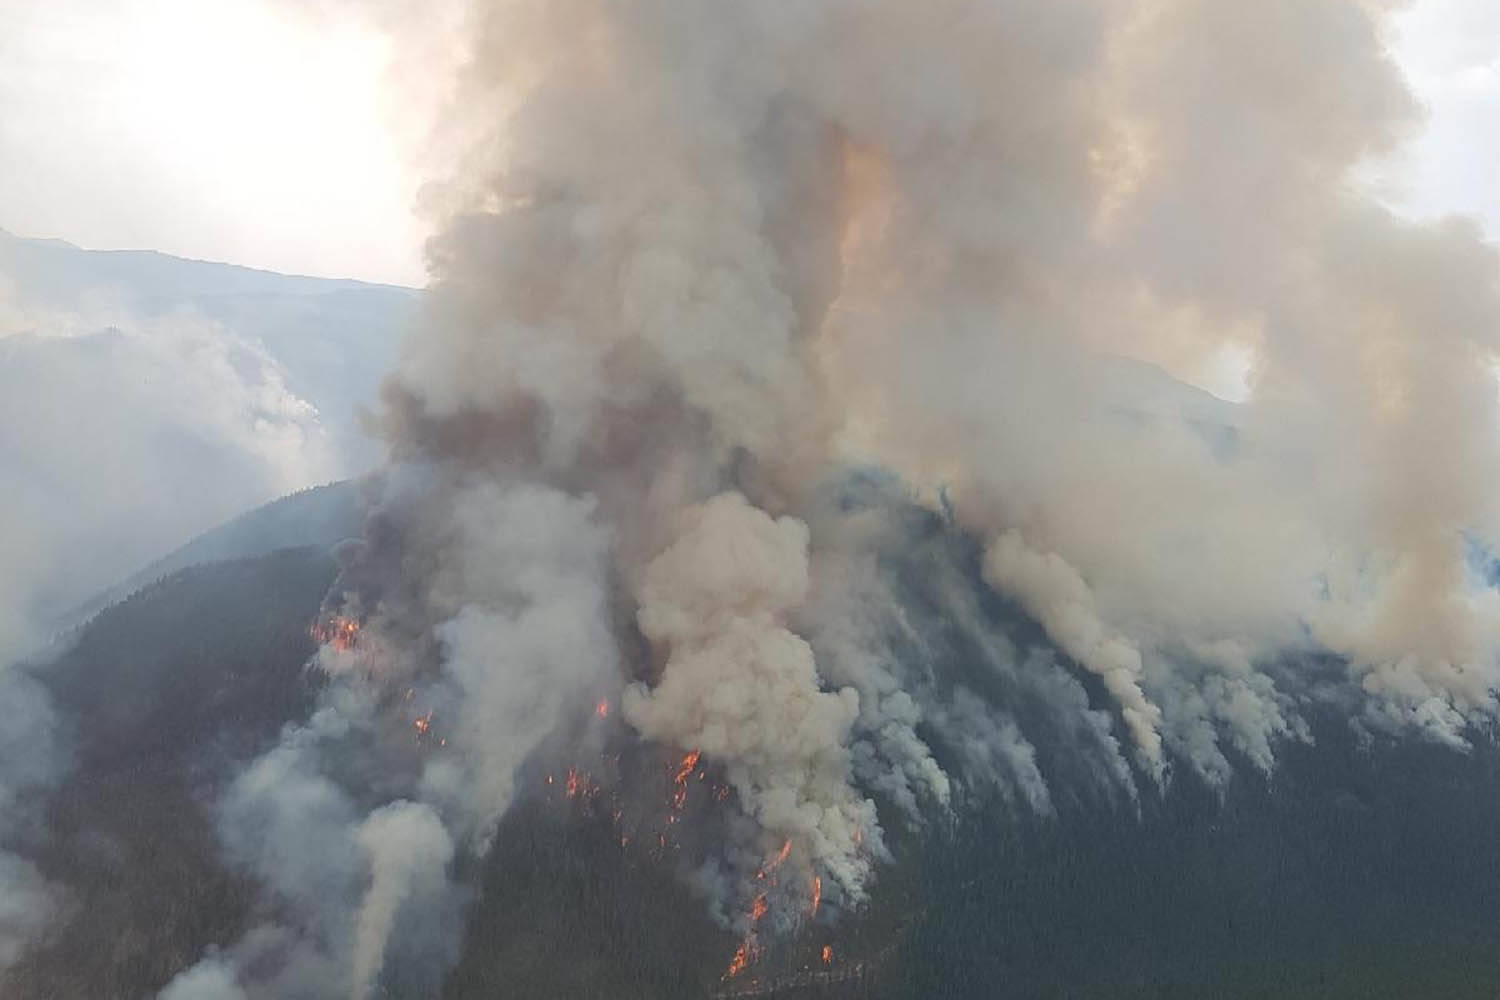 UPDATE: Placer Mountain fire in Similkameen Valley grows to 2,336 hectares